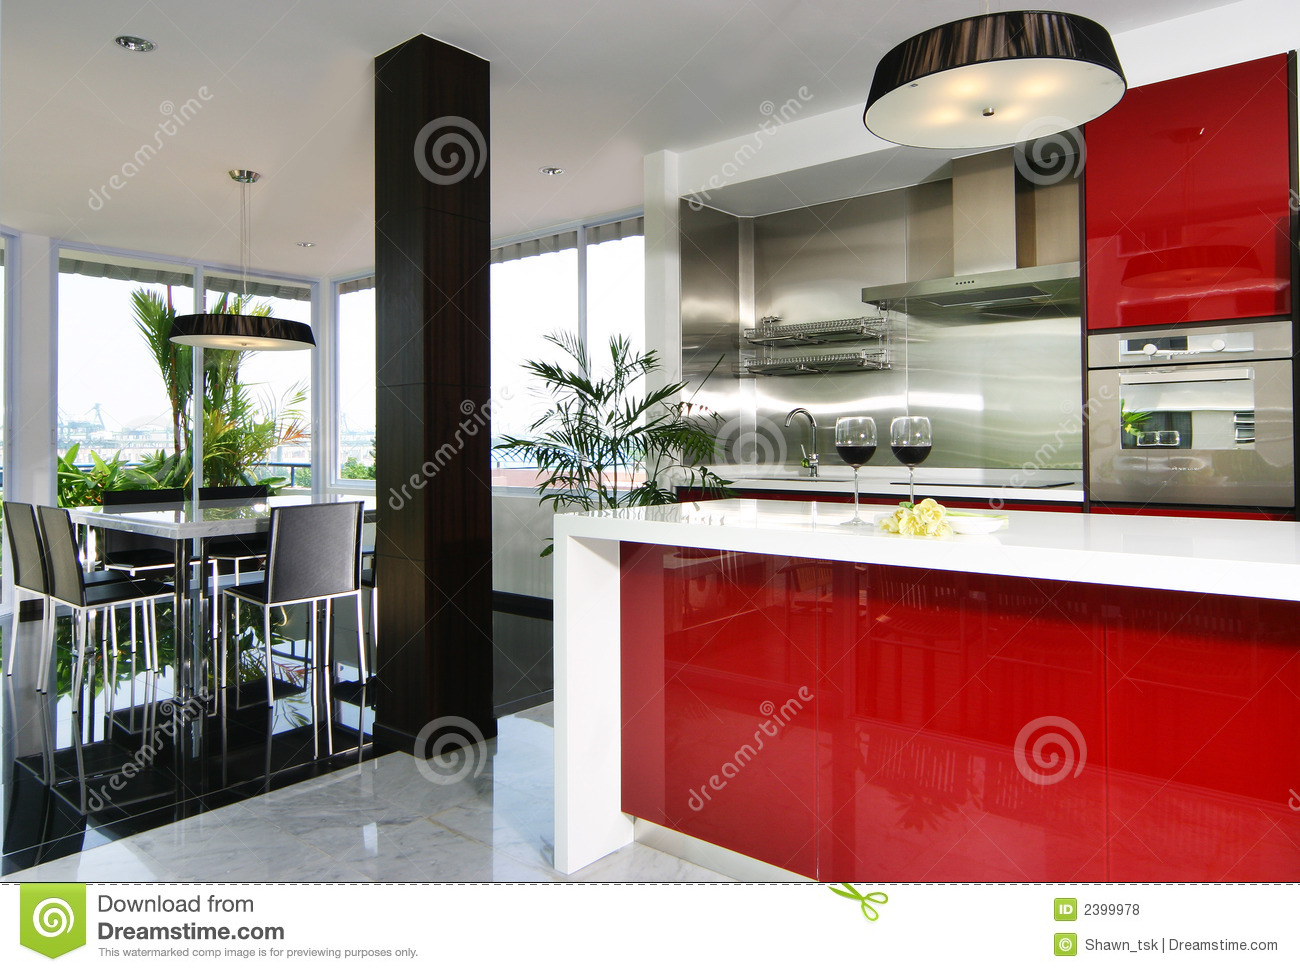 interior design for kitchen kitchen interior design Interior design kitchen Interior Design Kitchen Royalty Free Stock Photos Image